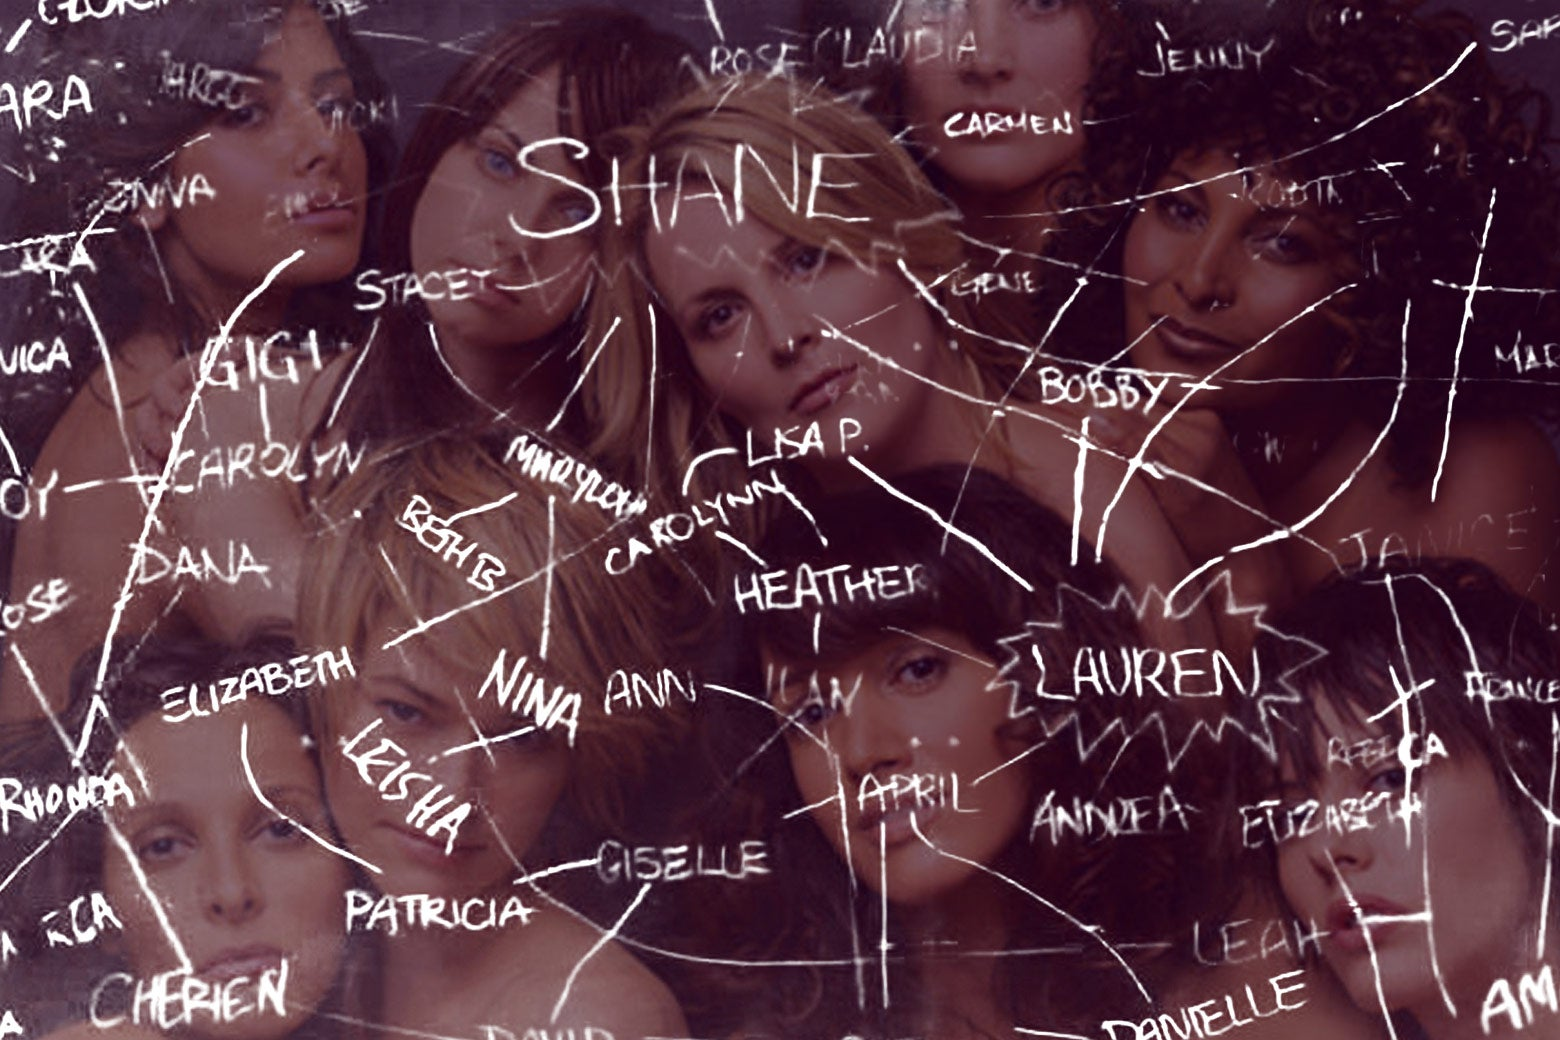 L Word characters behind THE CHART.